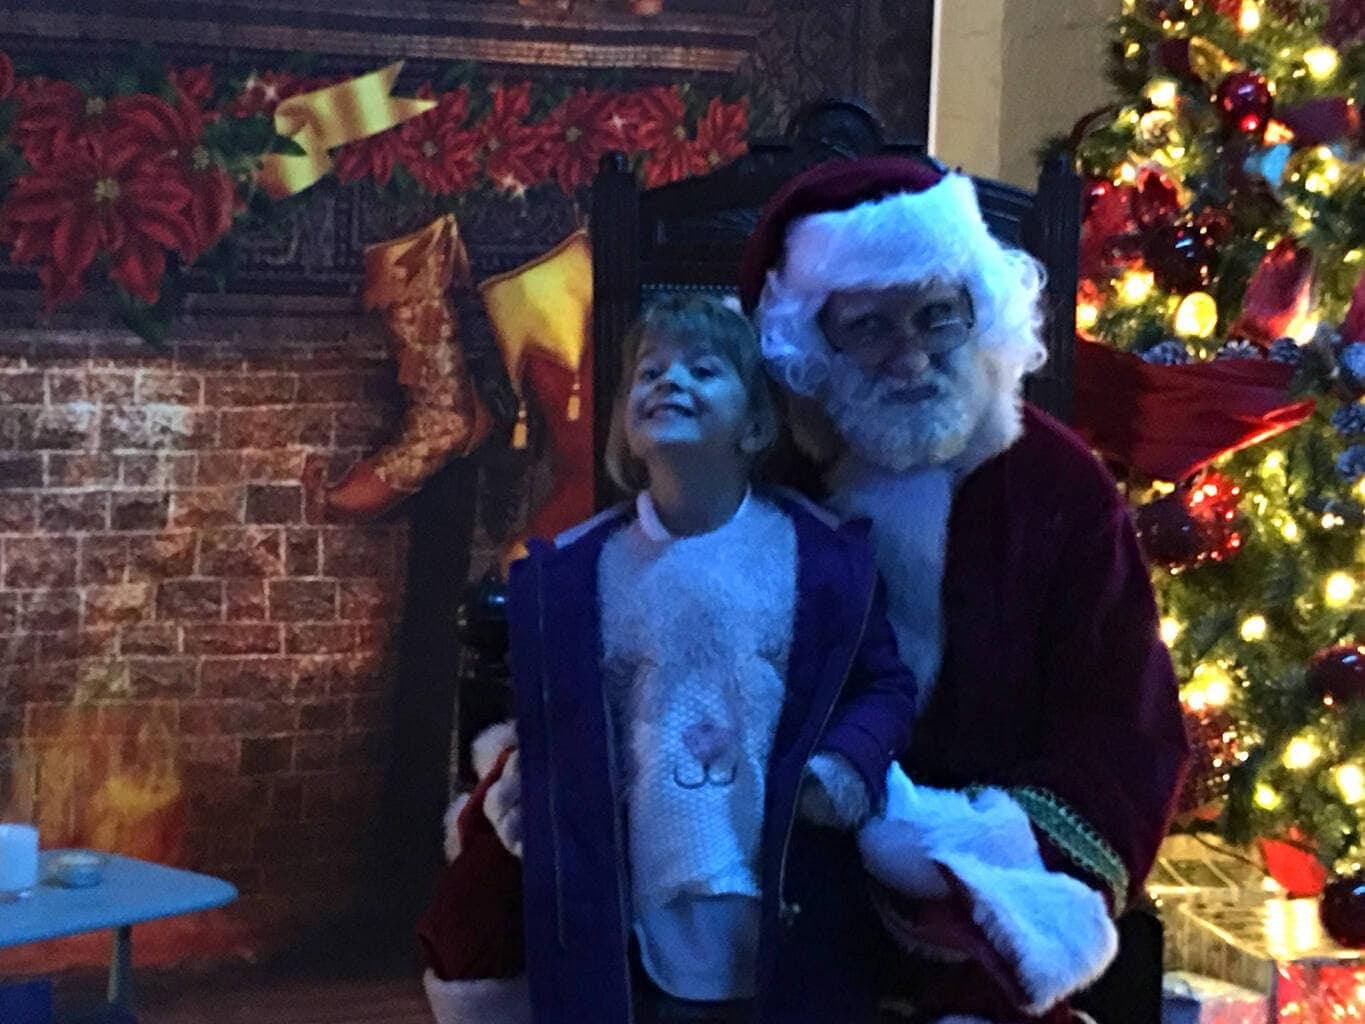 Storytime with Santa at St George's Hall Grotto www.minitravellers.co.uk